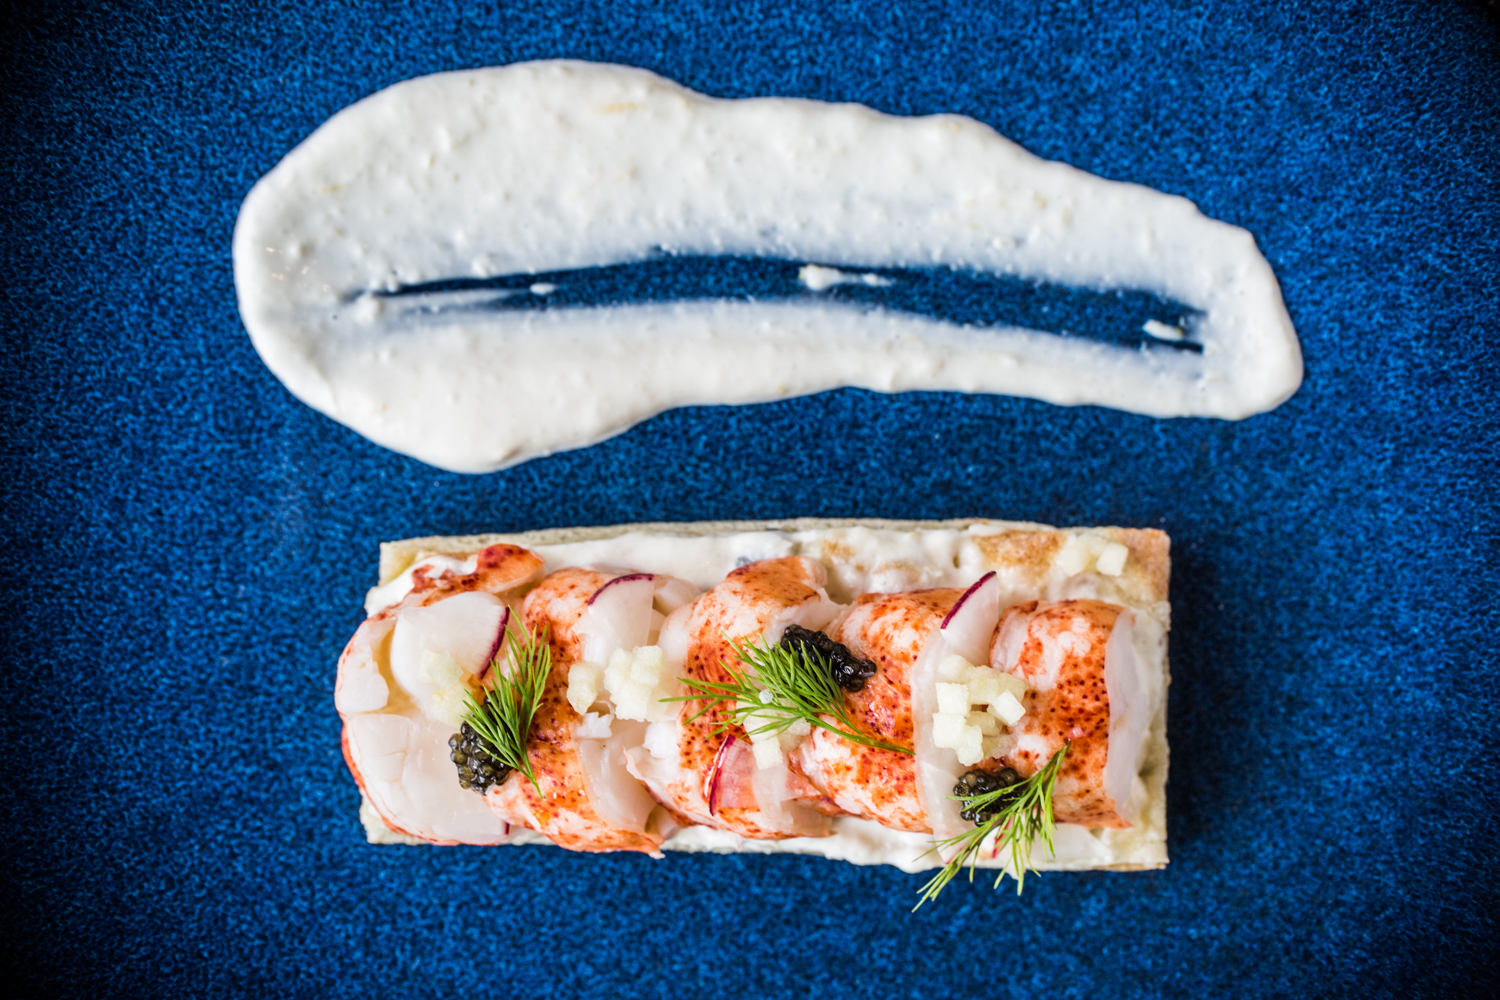 3_MH - Lobster Tart - Andrea Behrends